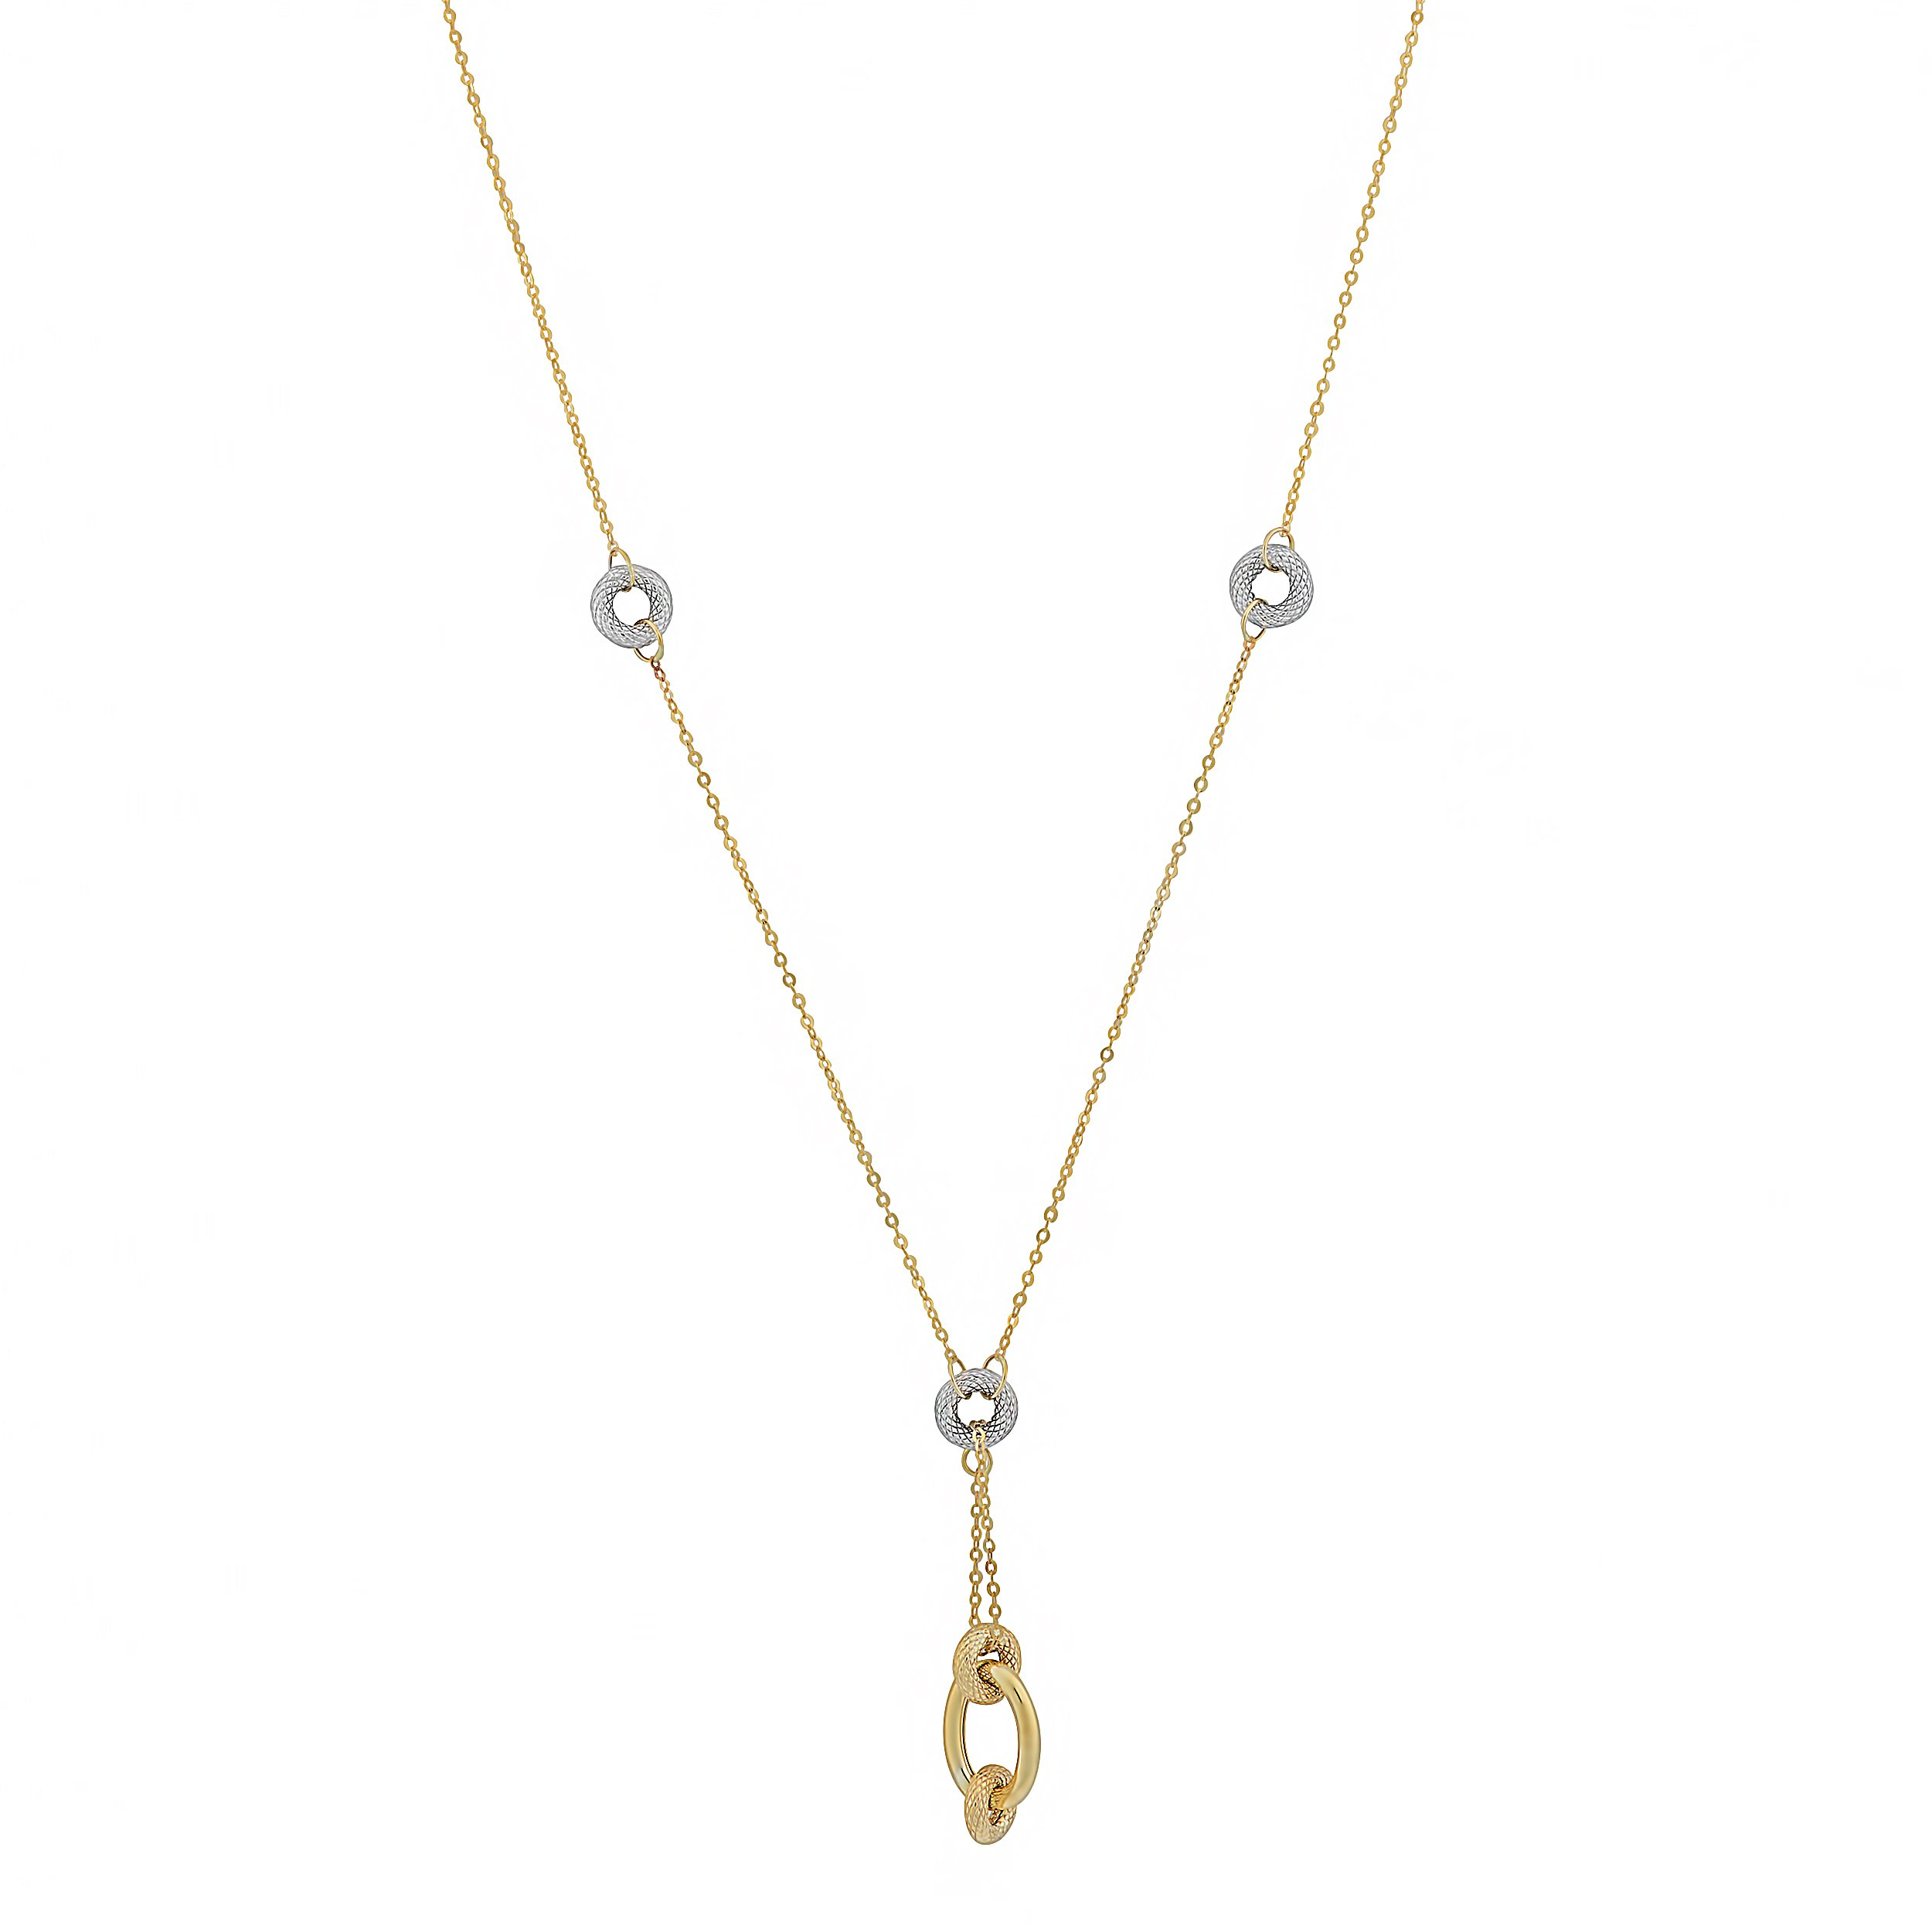 10k Two-Tone Gold Oval And Doughnuts Lariat Necklace (18 inch)